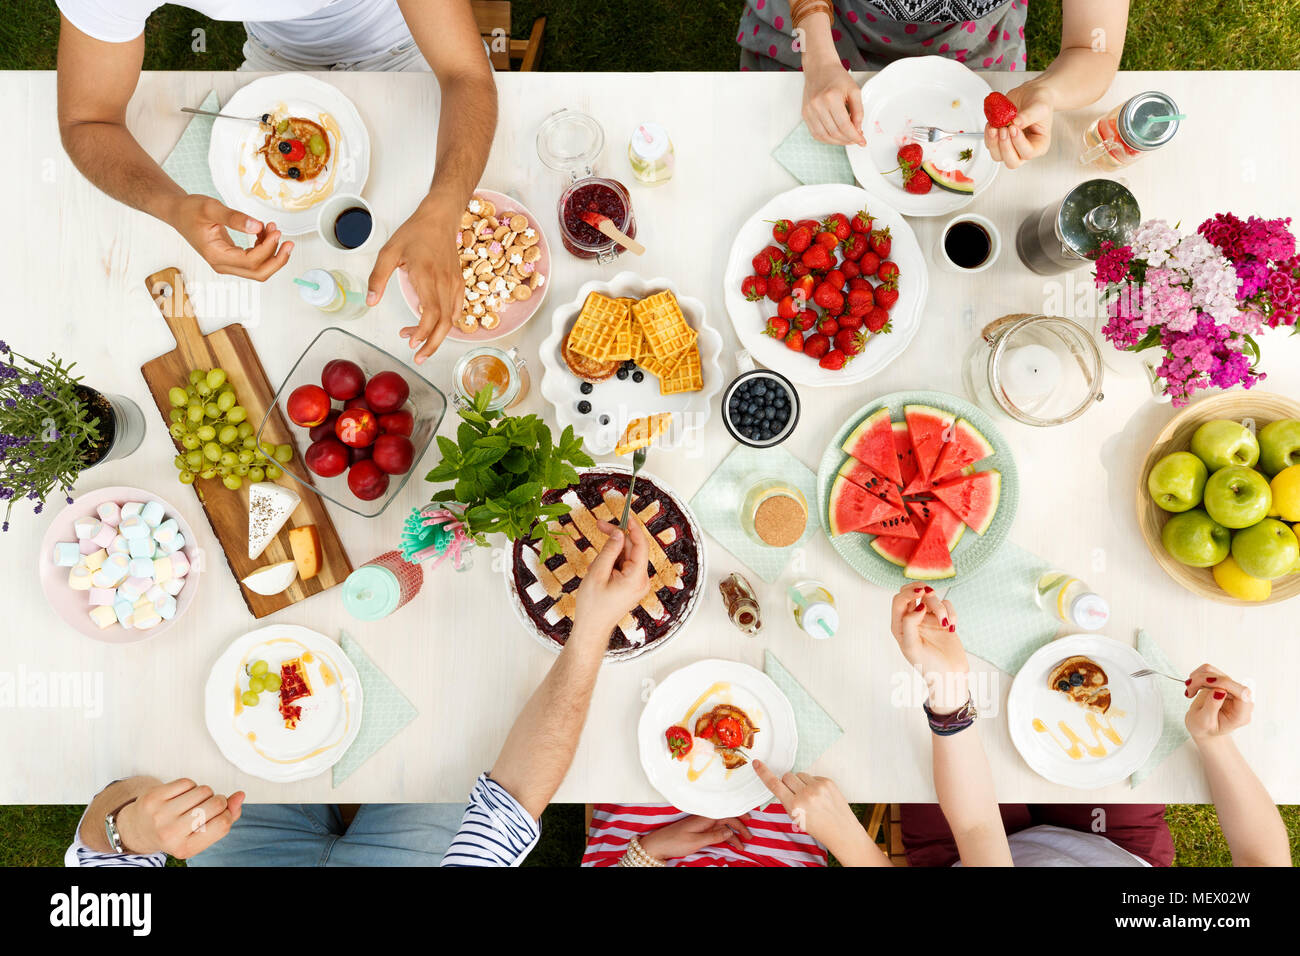 Multicultural group sharing healthy food like fruit and cheese outside with flowers on the table - Stock Image